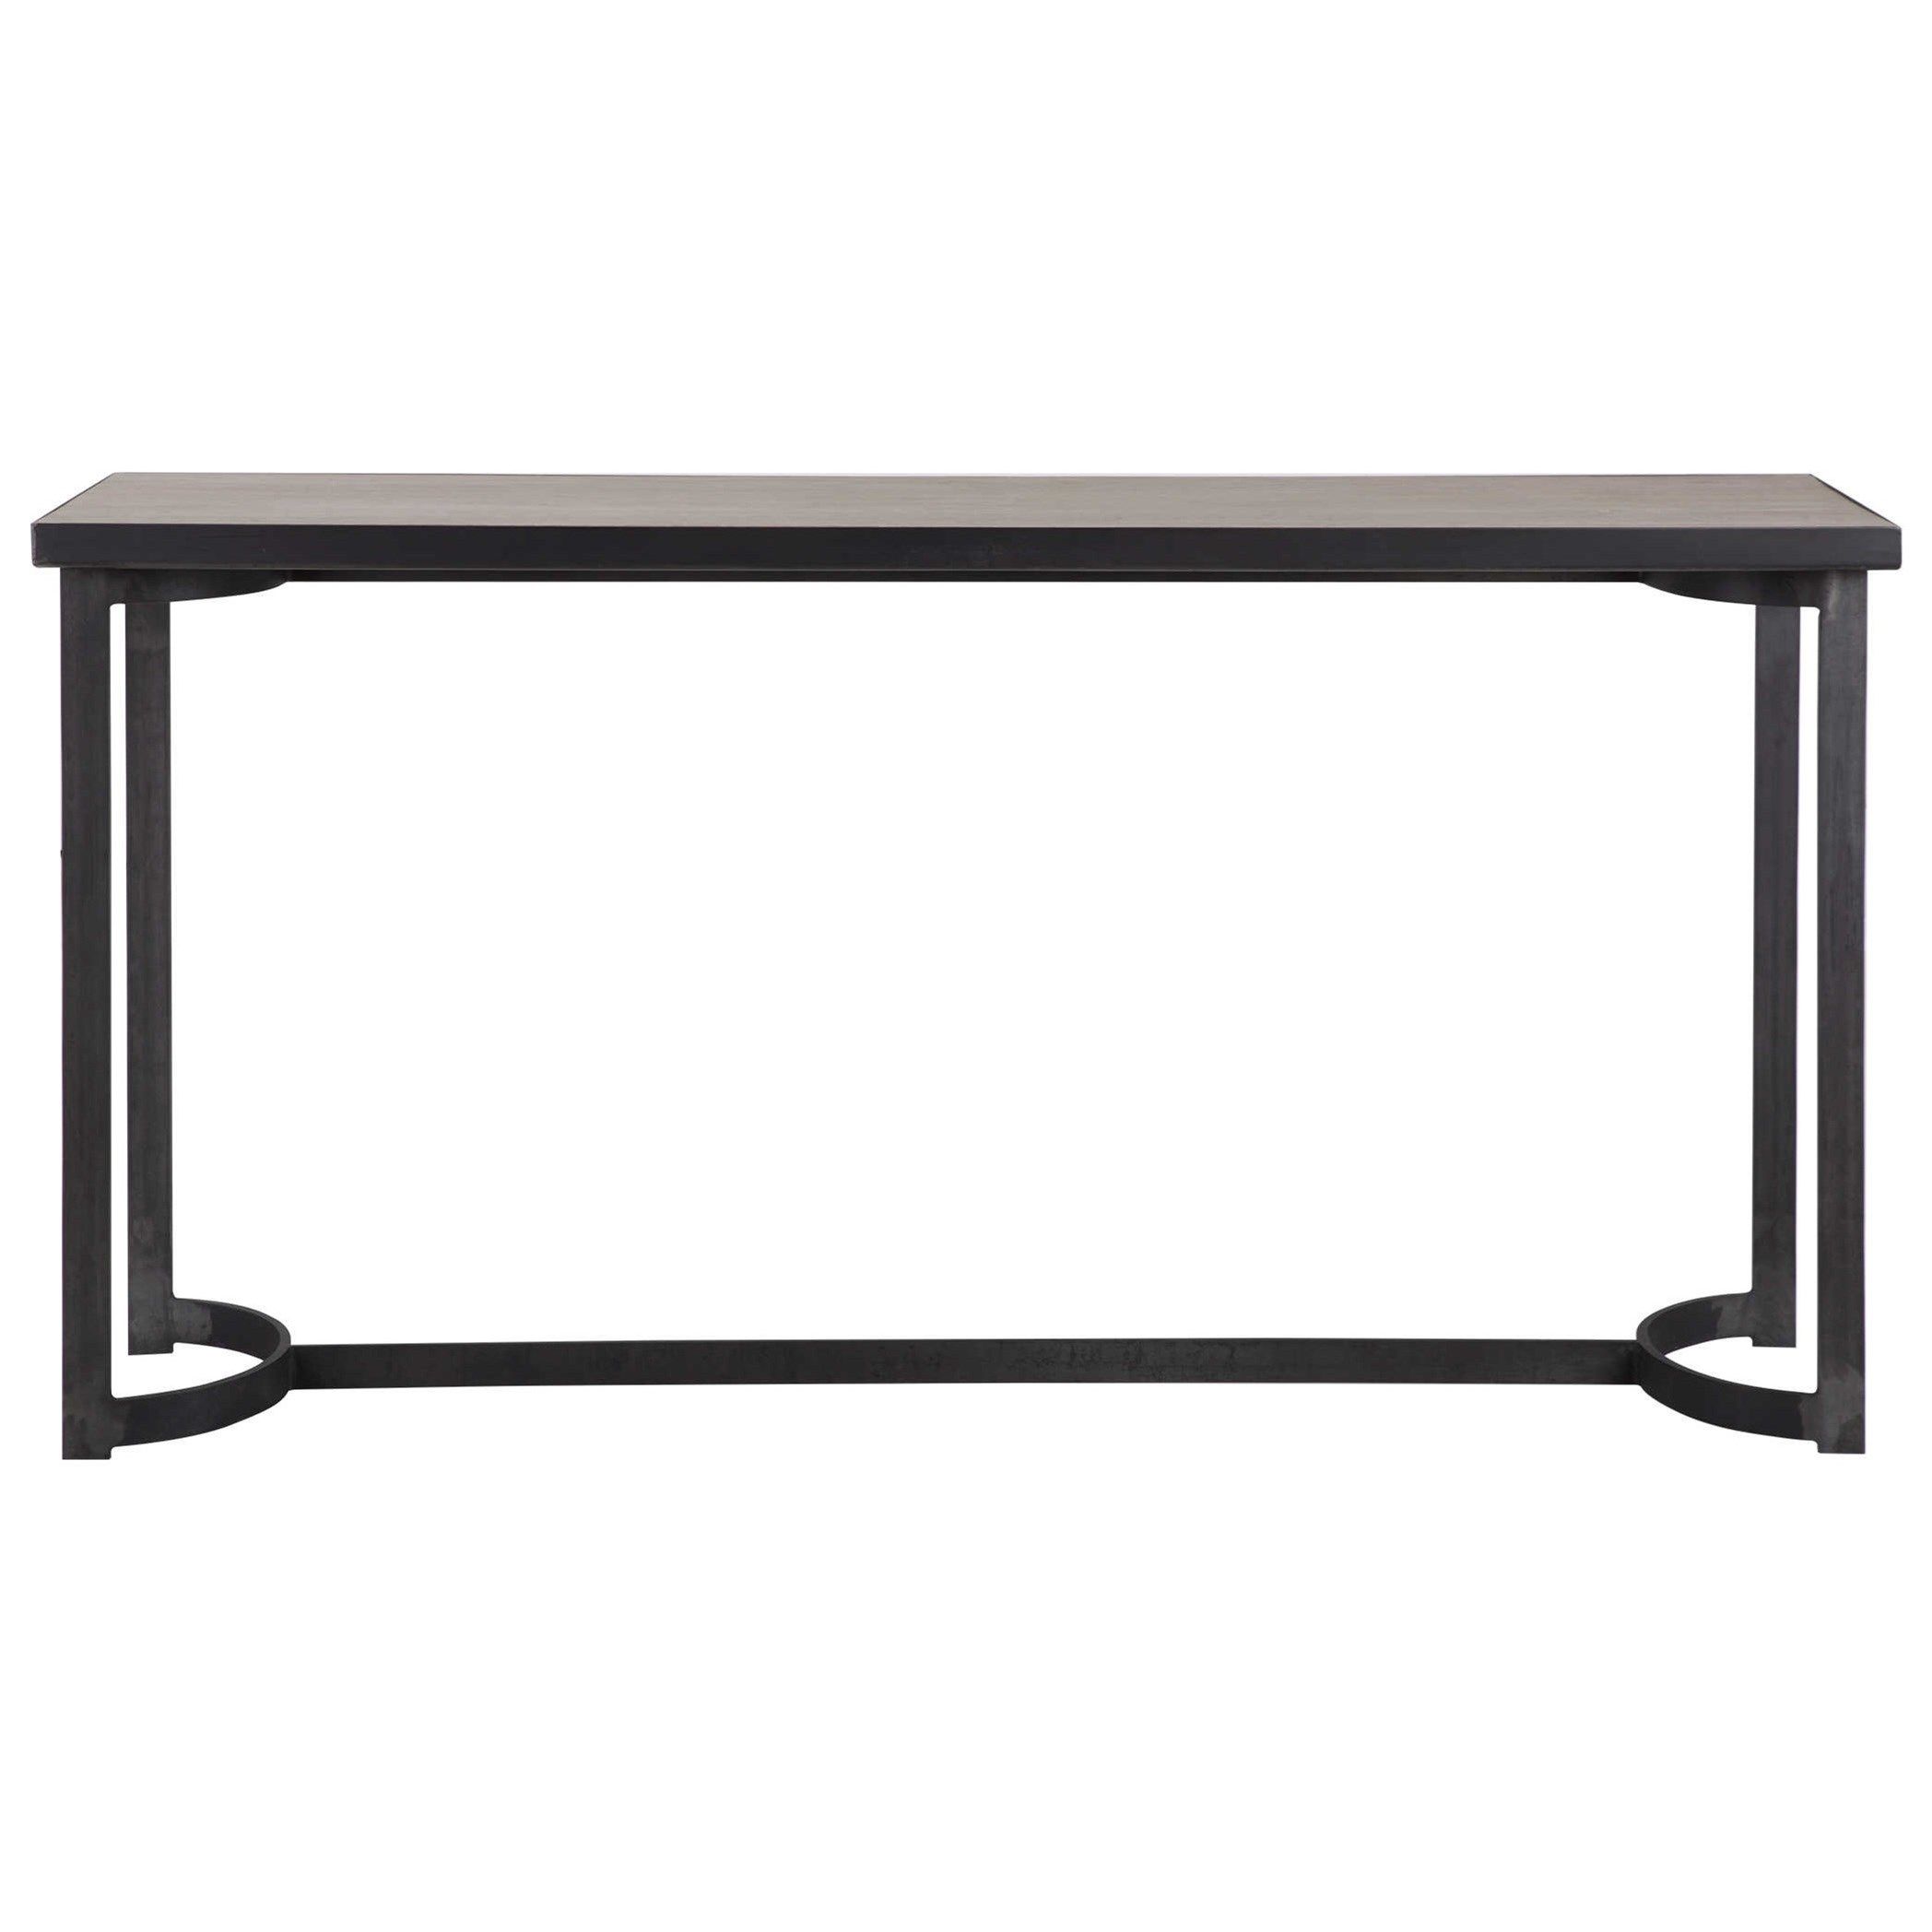 Accent Furniture - Occasional Tables Basuto Steel Console Table by Uttermost at Upper Room Home Furnishings